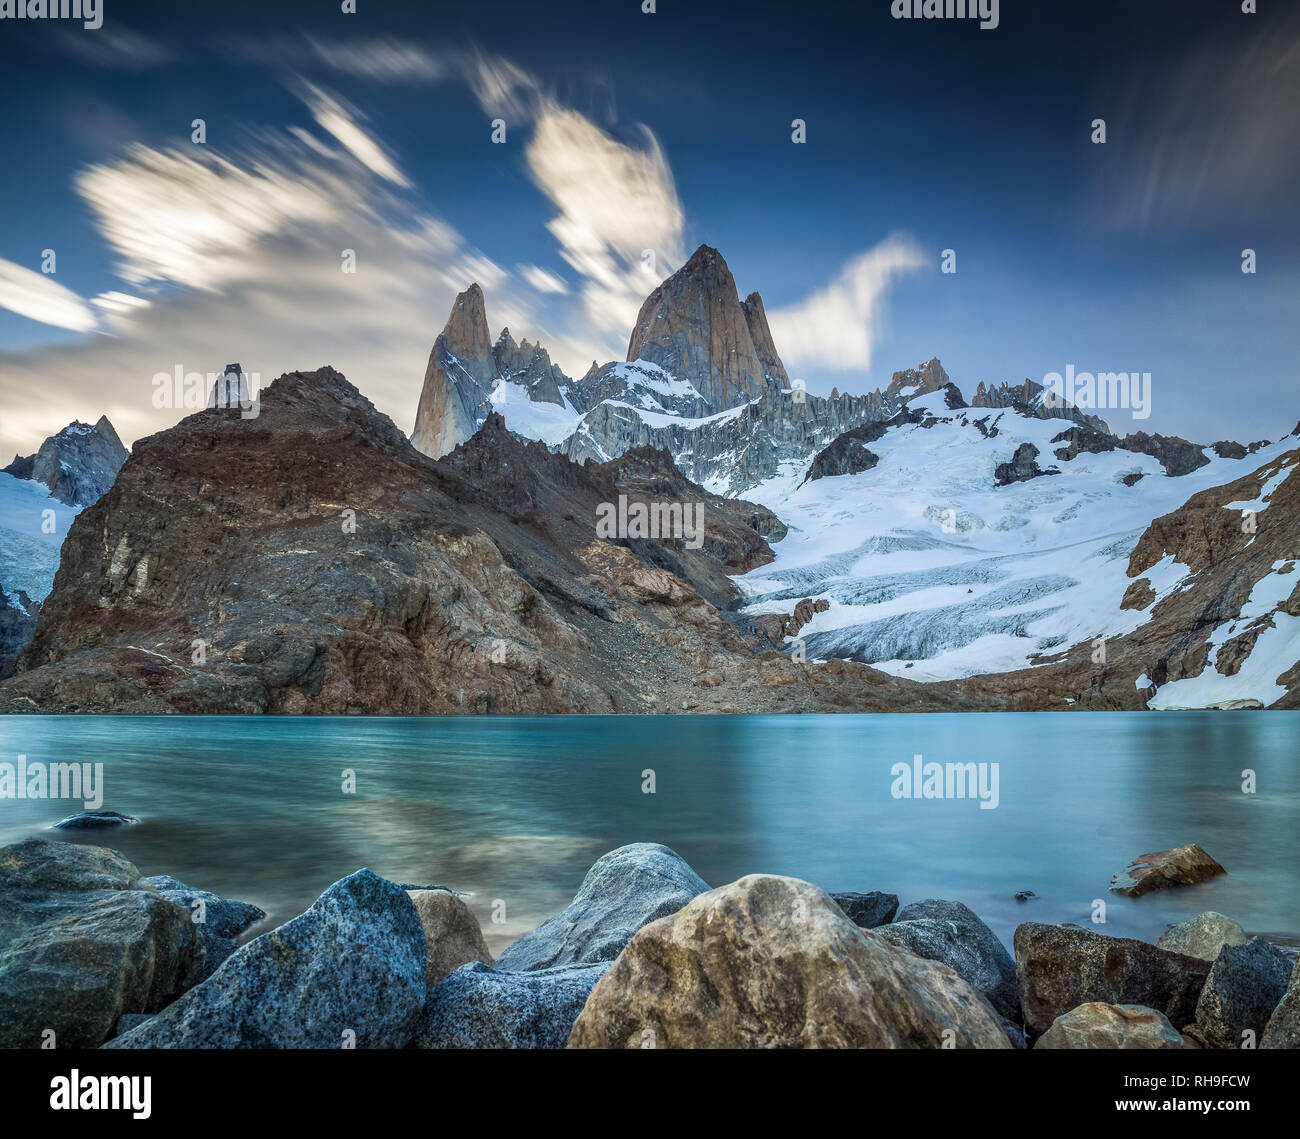 a long exposure picture in the last rays of light at Laguna de Los Tres with iconic Mount Fitz Roy - Stock Image